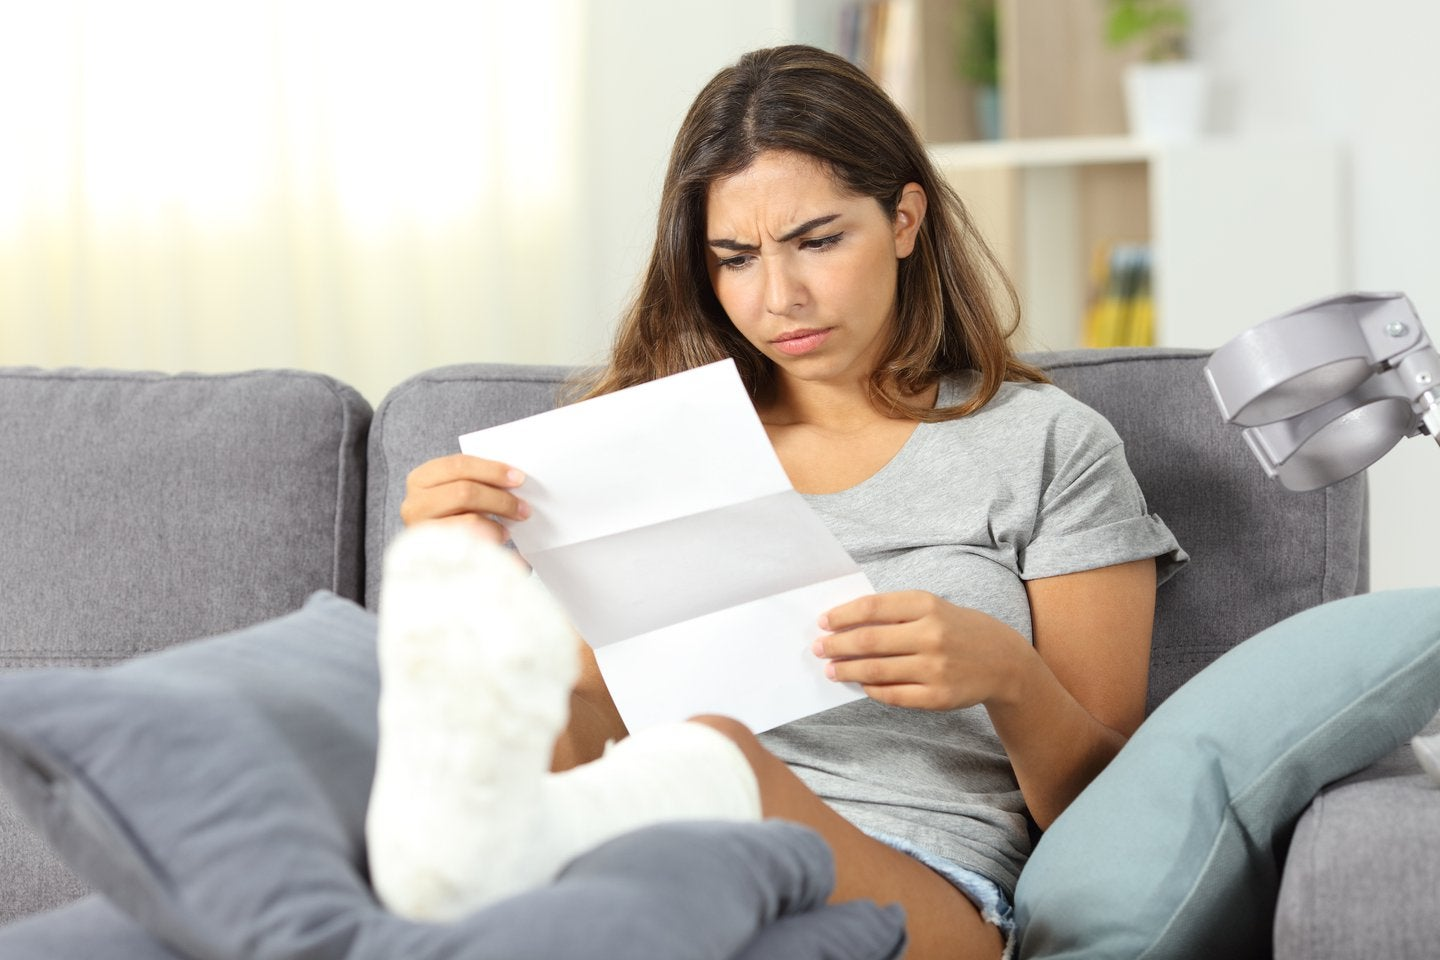 woman looking at document